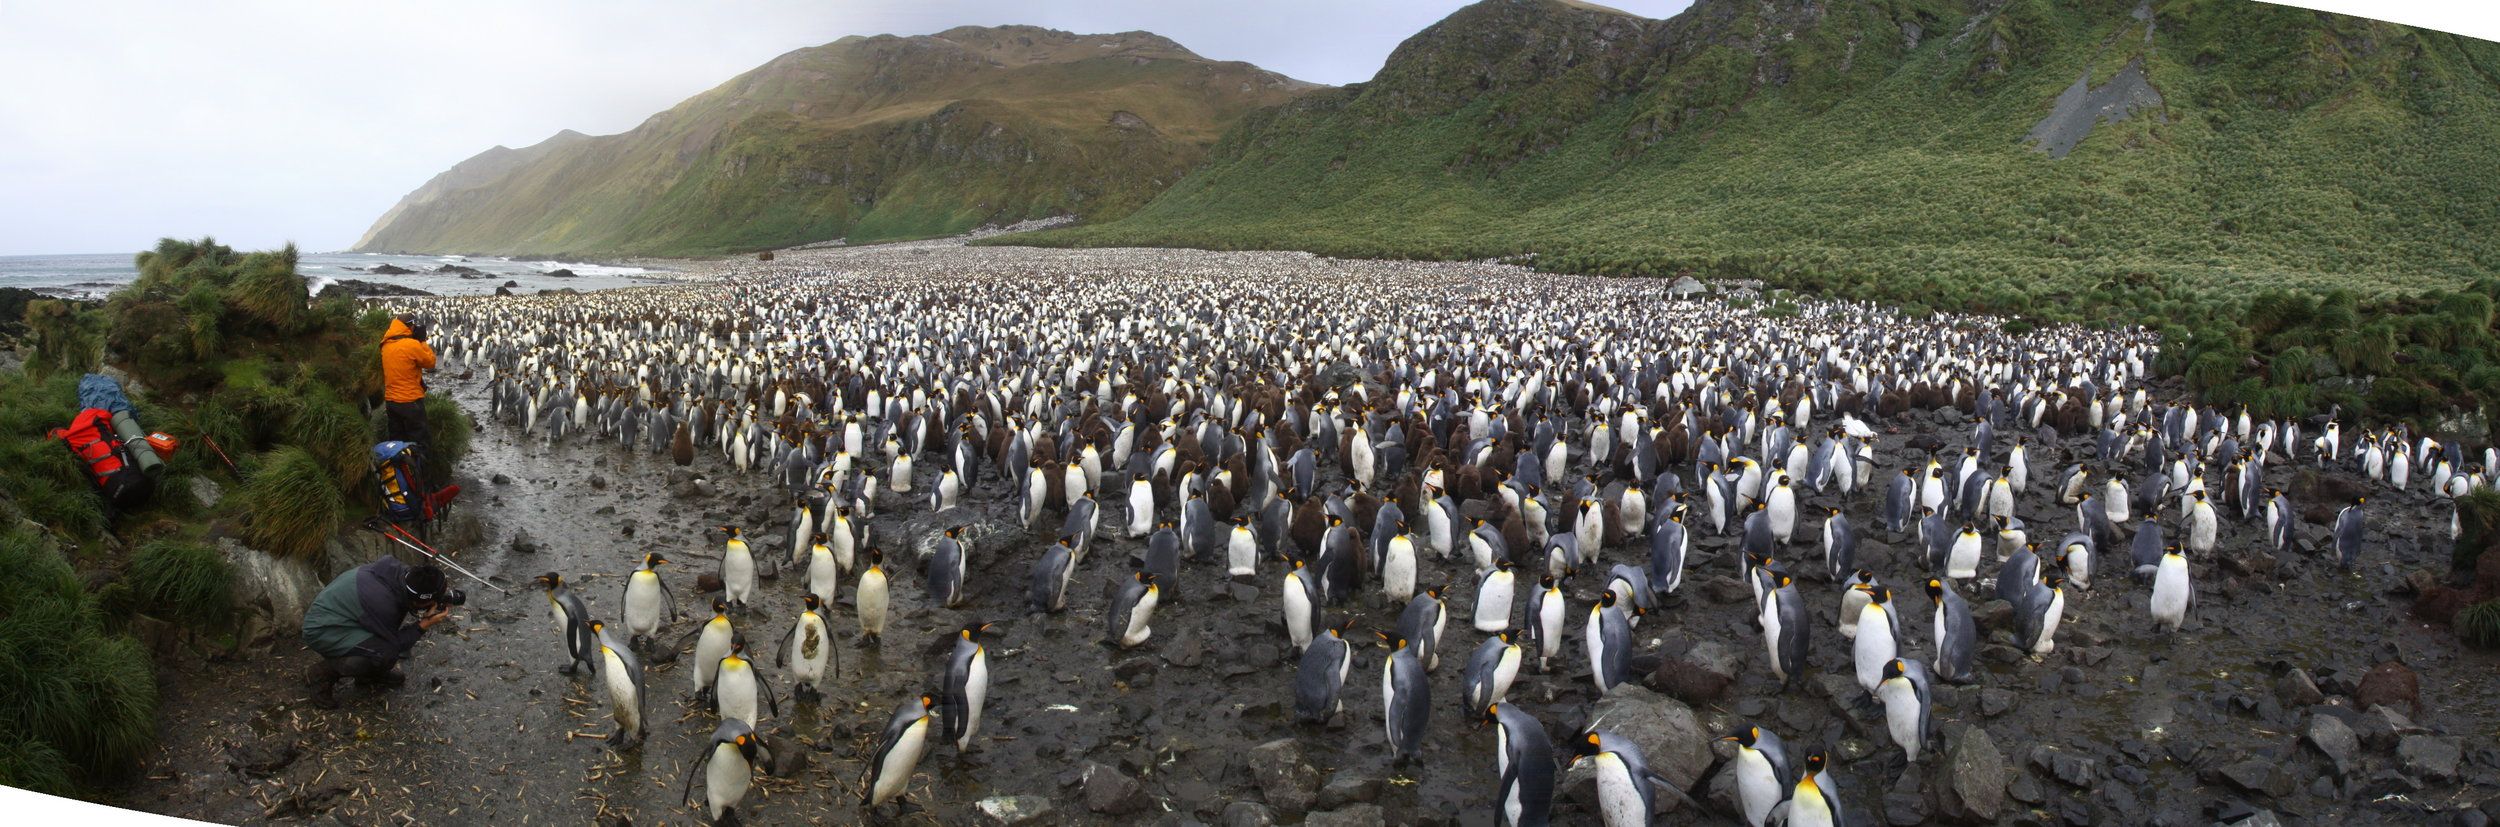 King penguin ( Aptenodytes patagonicus)  colony at Lusitania Bay, Macquarie Island. Photo by Josie van Dorst